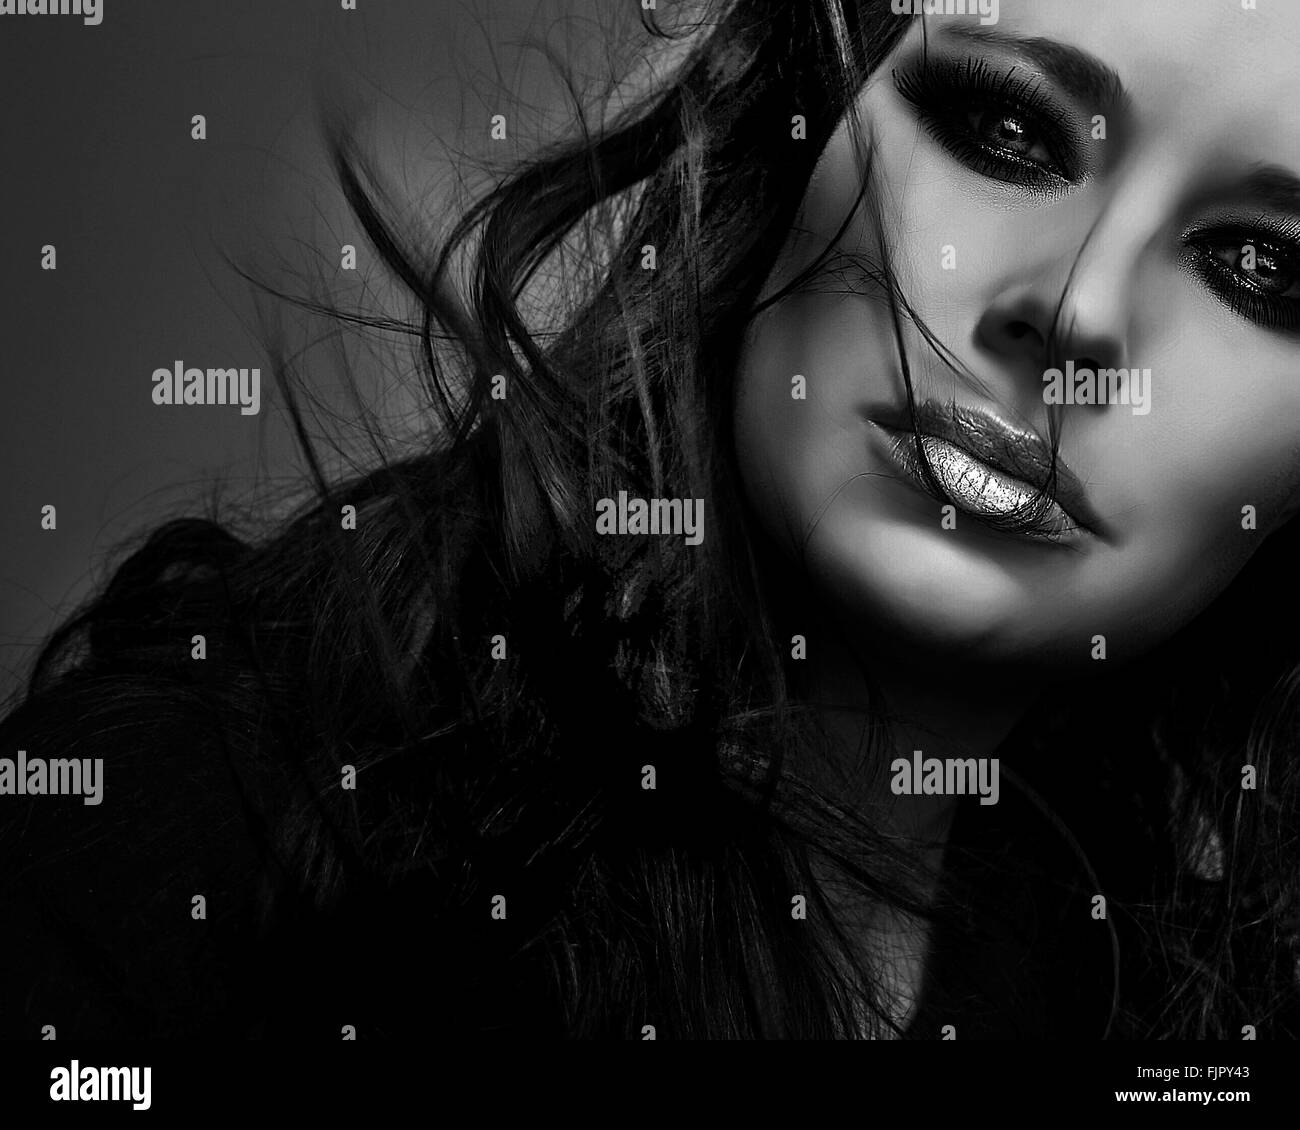 Close-Up Portrait Of Beautiful Woman With Make-Up Against Gray Background - Stock Image